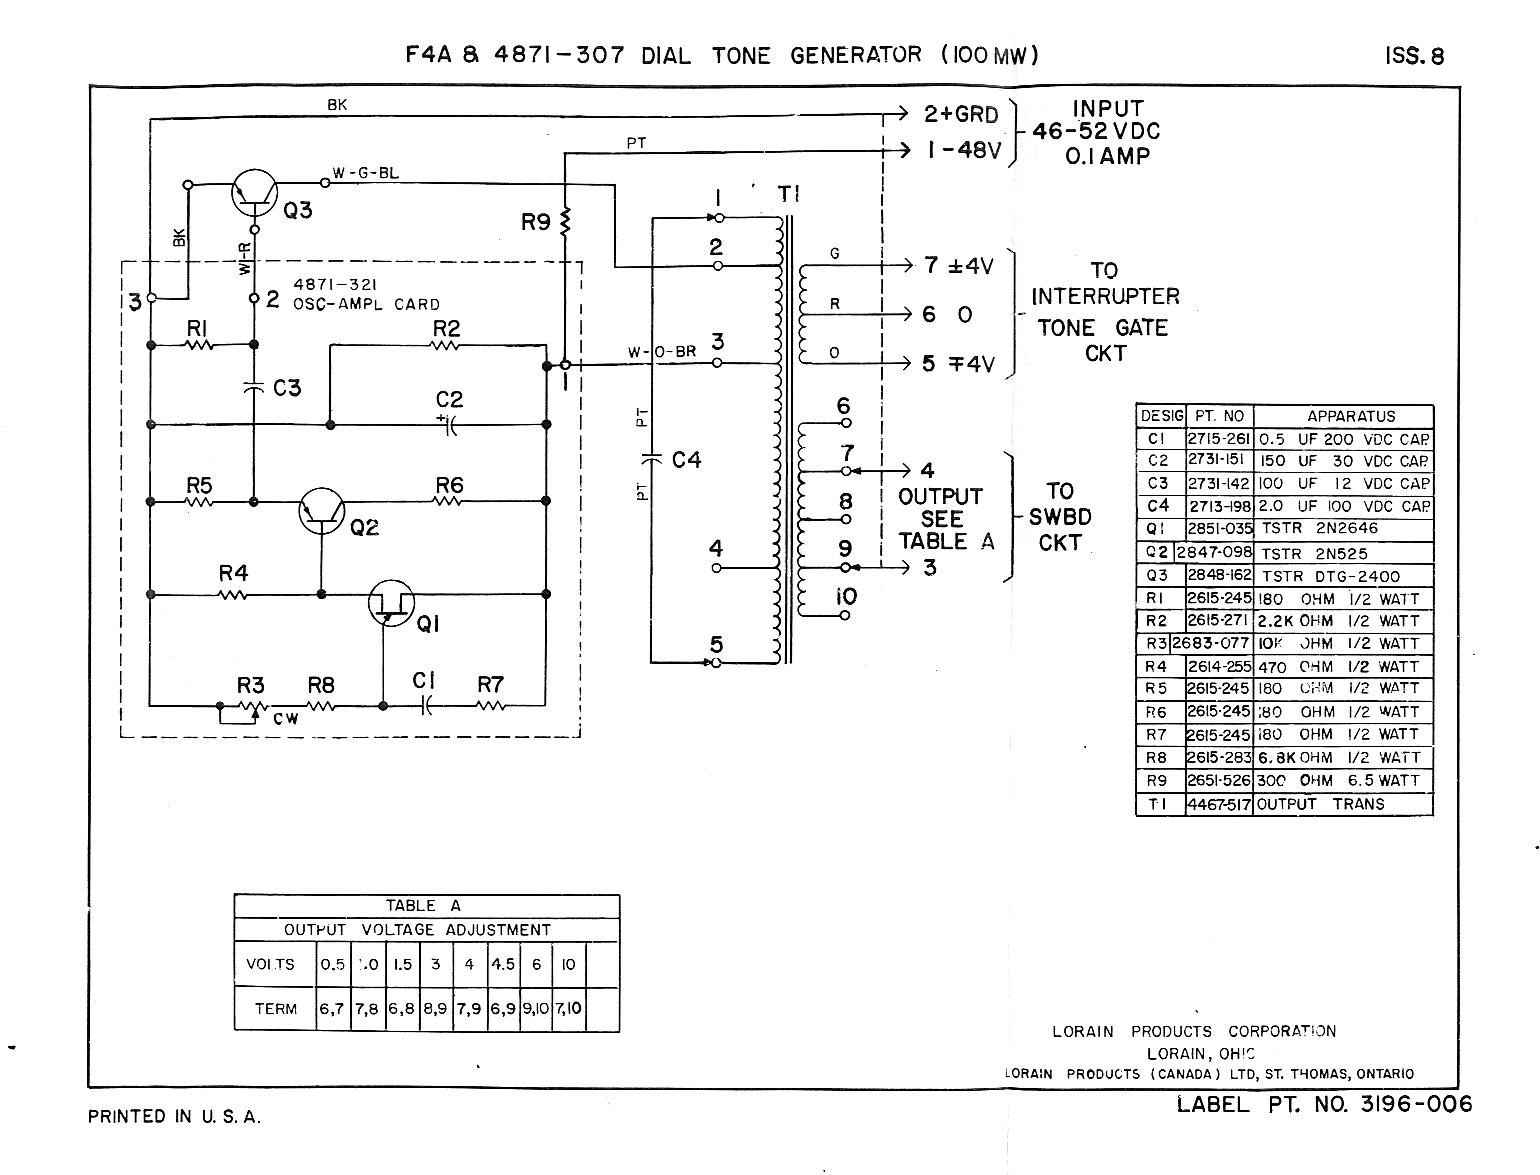 lorain_f4a telephone technical references Residential Telephone Wiring Diagram at gsmx.co